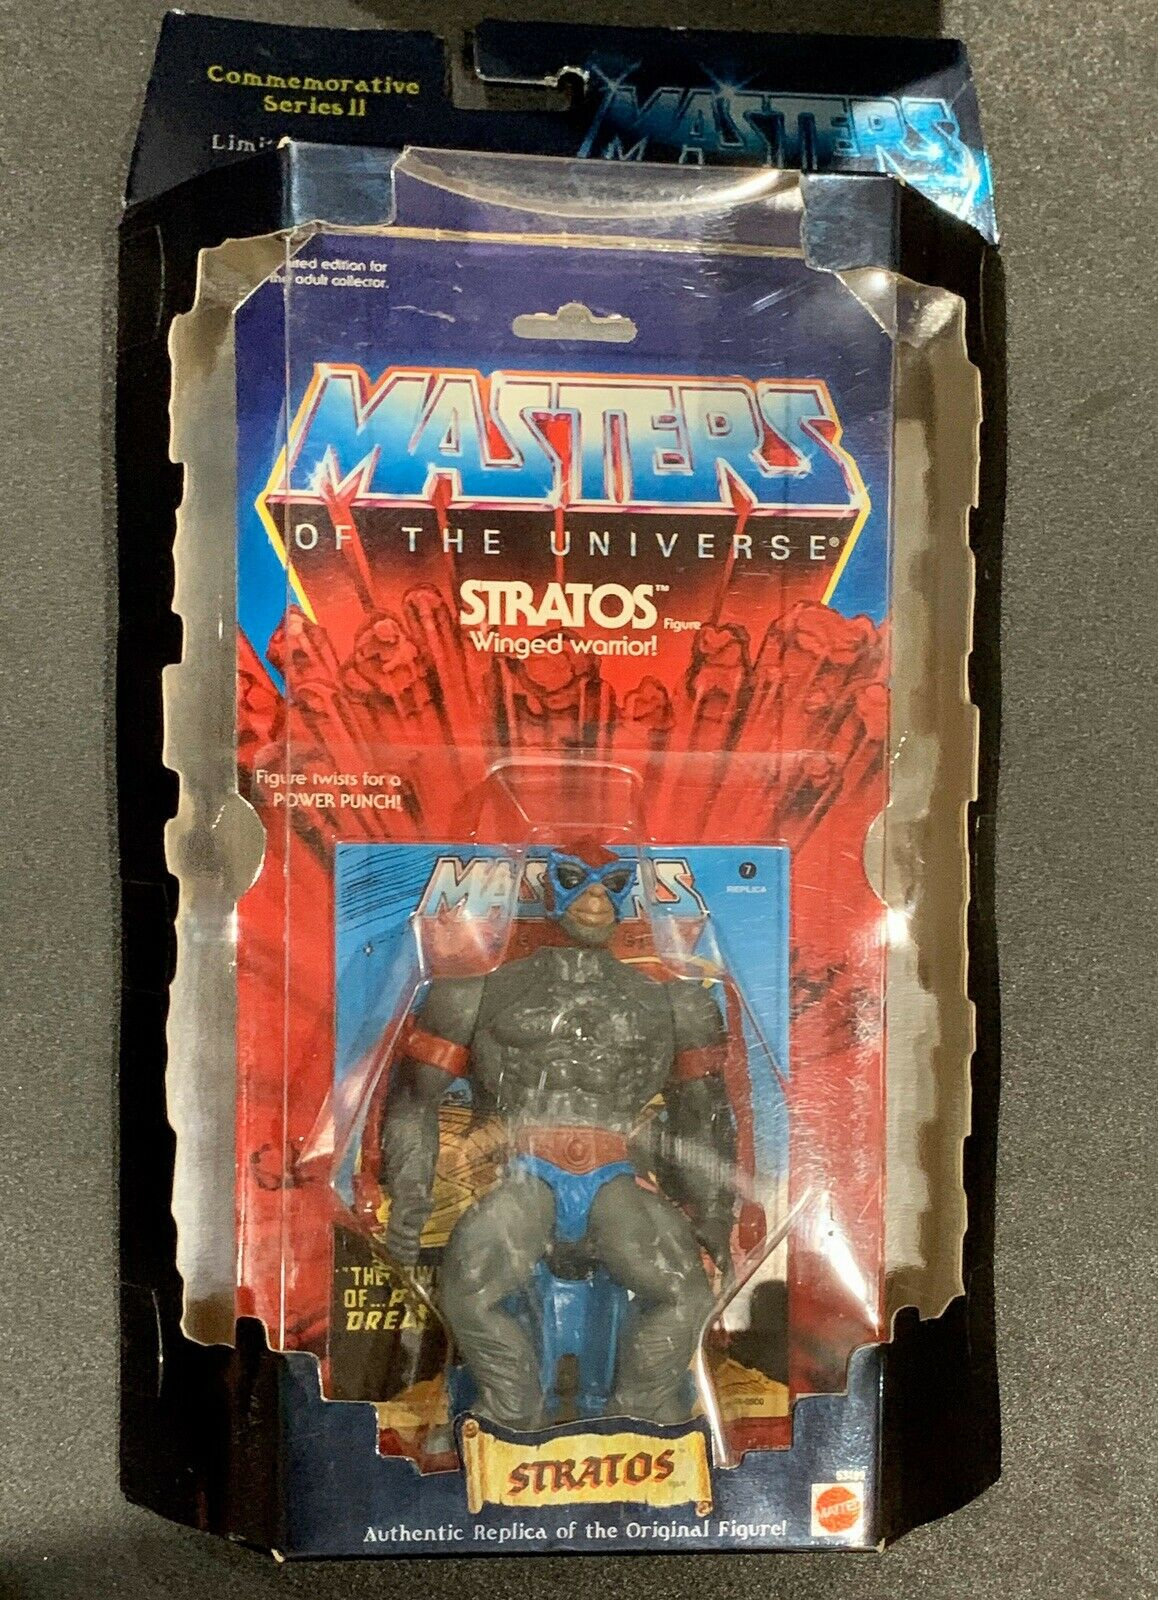 Commemorative MOC Masters Of The Universe Sratos